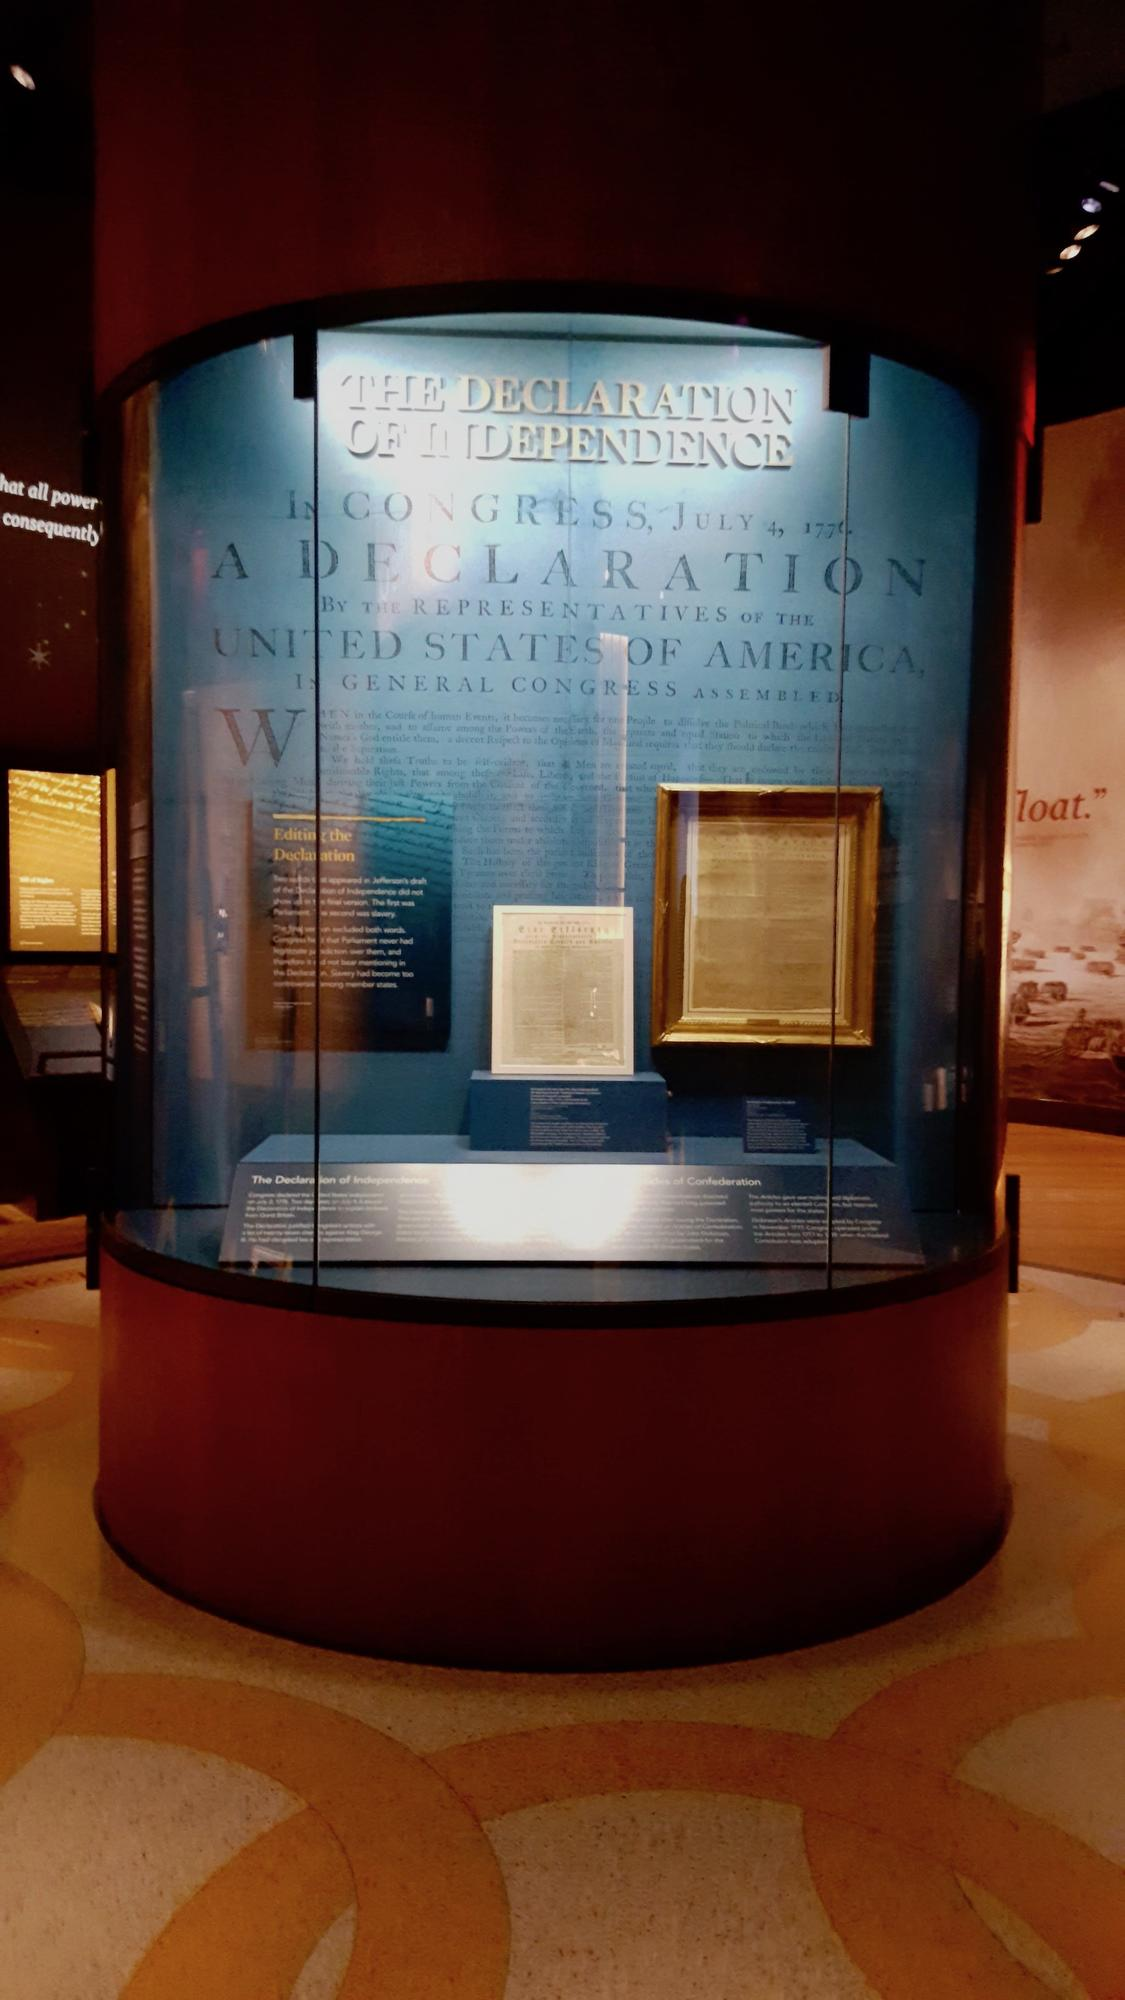 Declaration of Independence Case at the Museum of the American Revolution